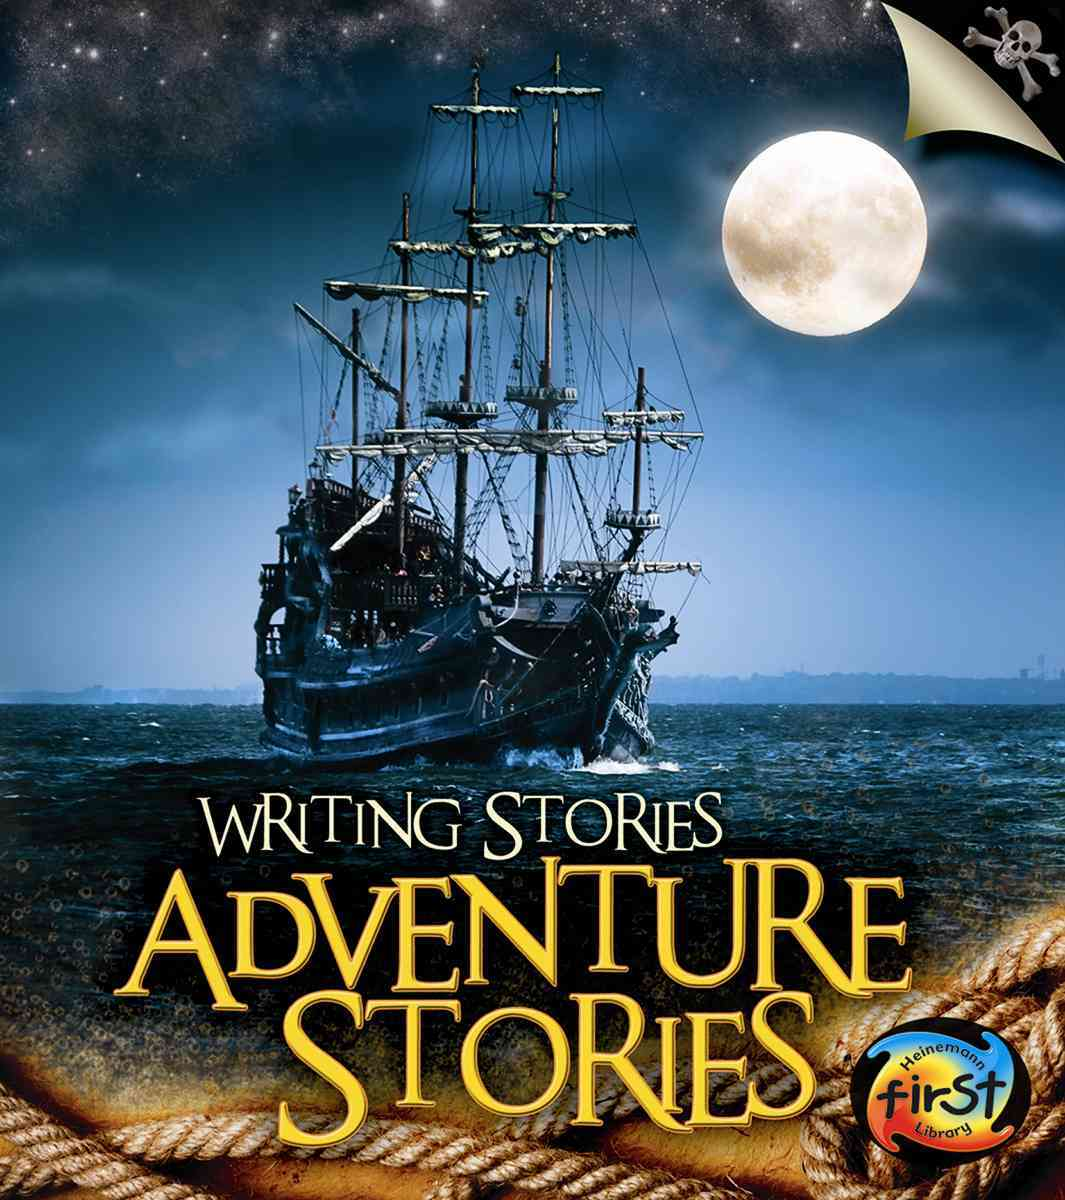 Adventure Stories By Ganeri, Anita